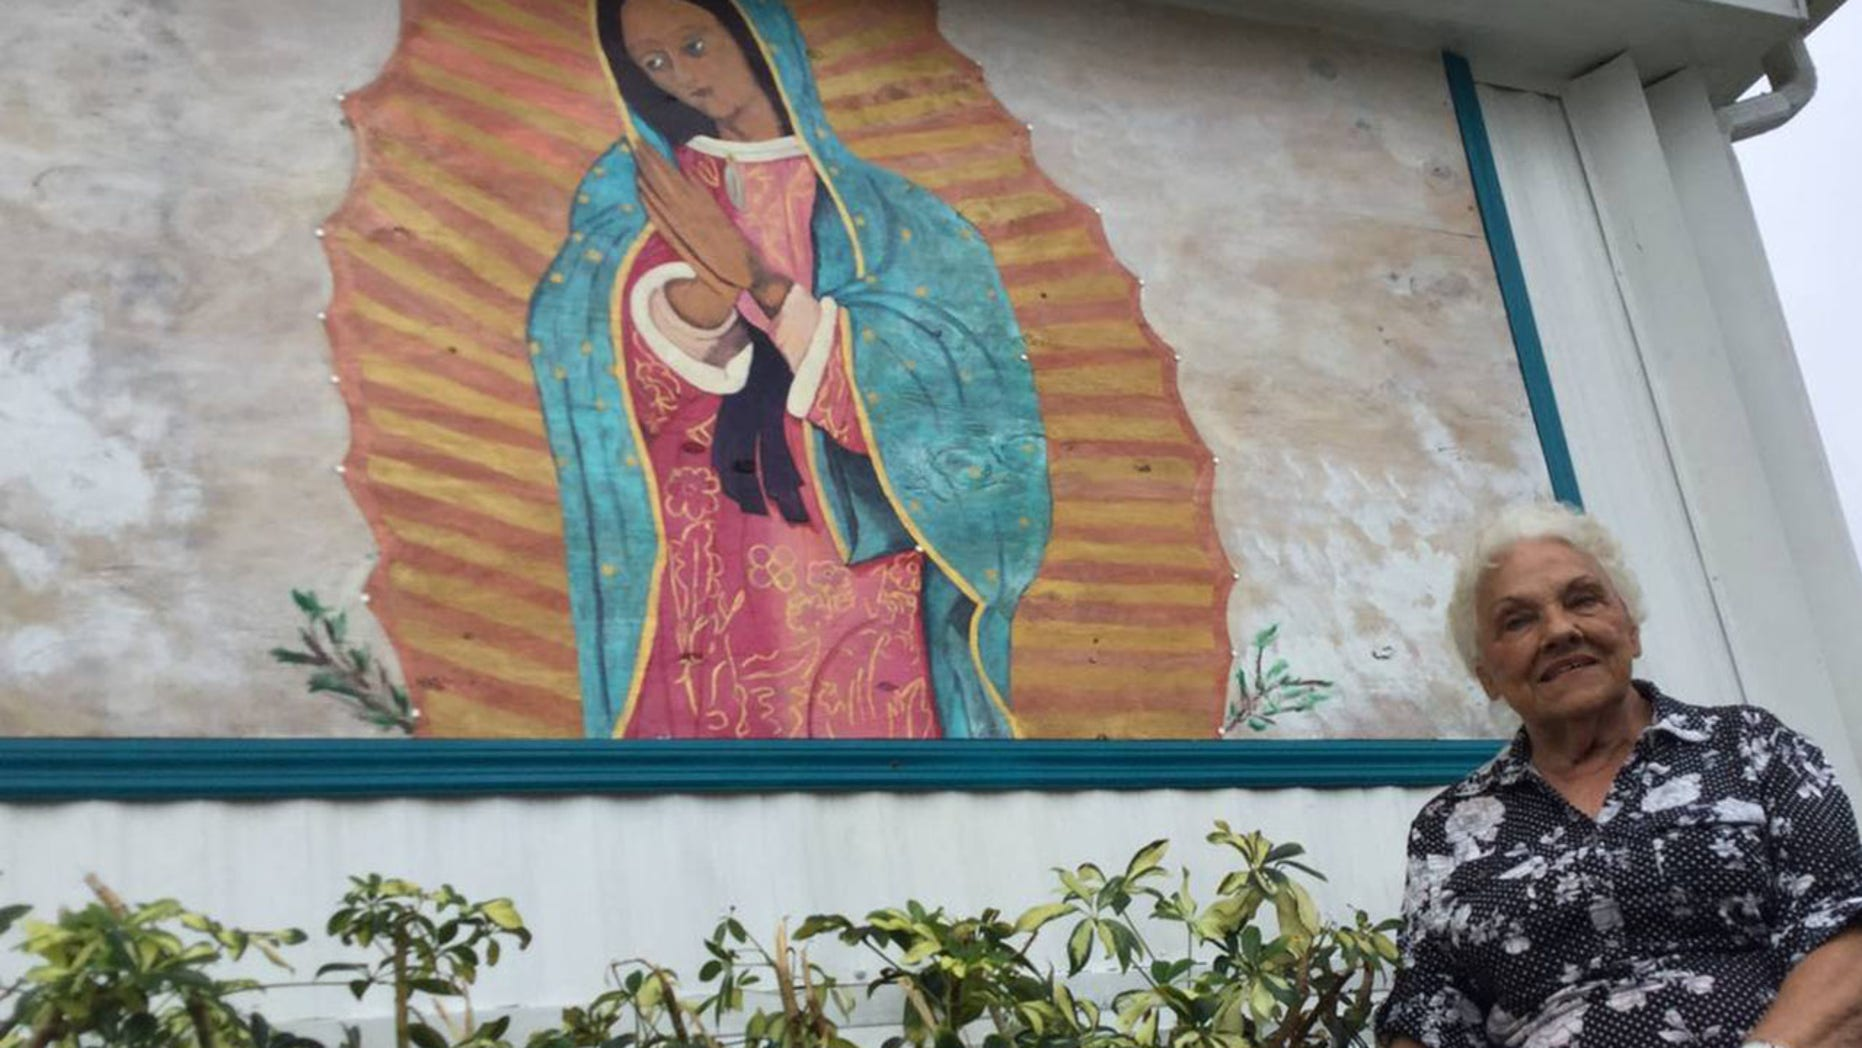 Millie Francis, 85, says she was inspired to paint a picture of the Virgin Mary on a piece of plywood that replaced a window she wanted removed from her mobile home in Bradenton, Florida.